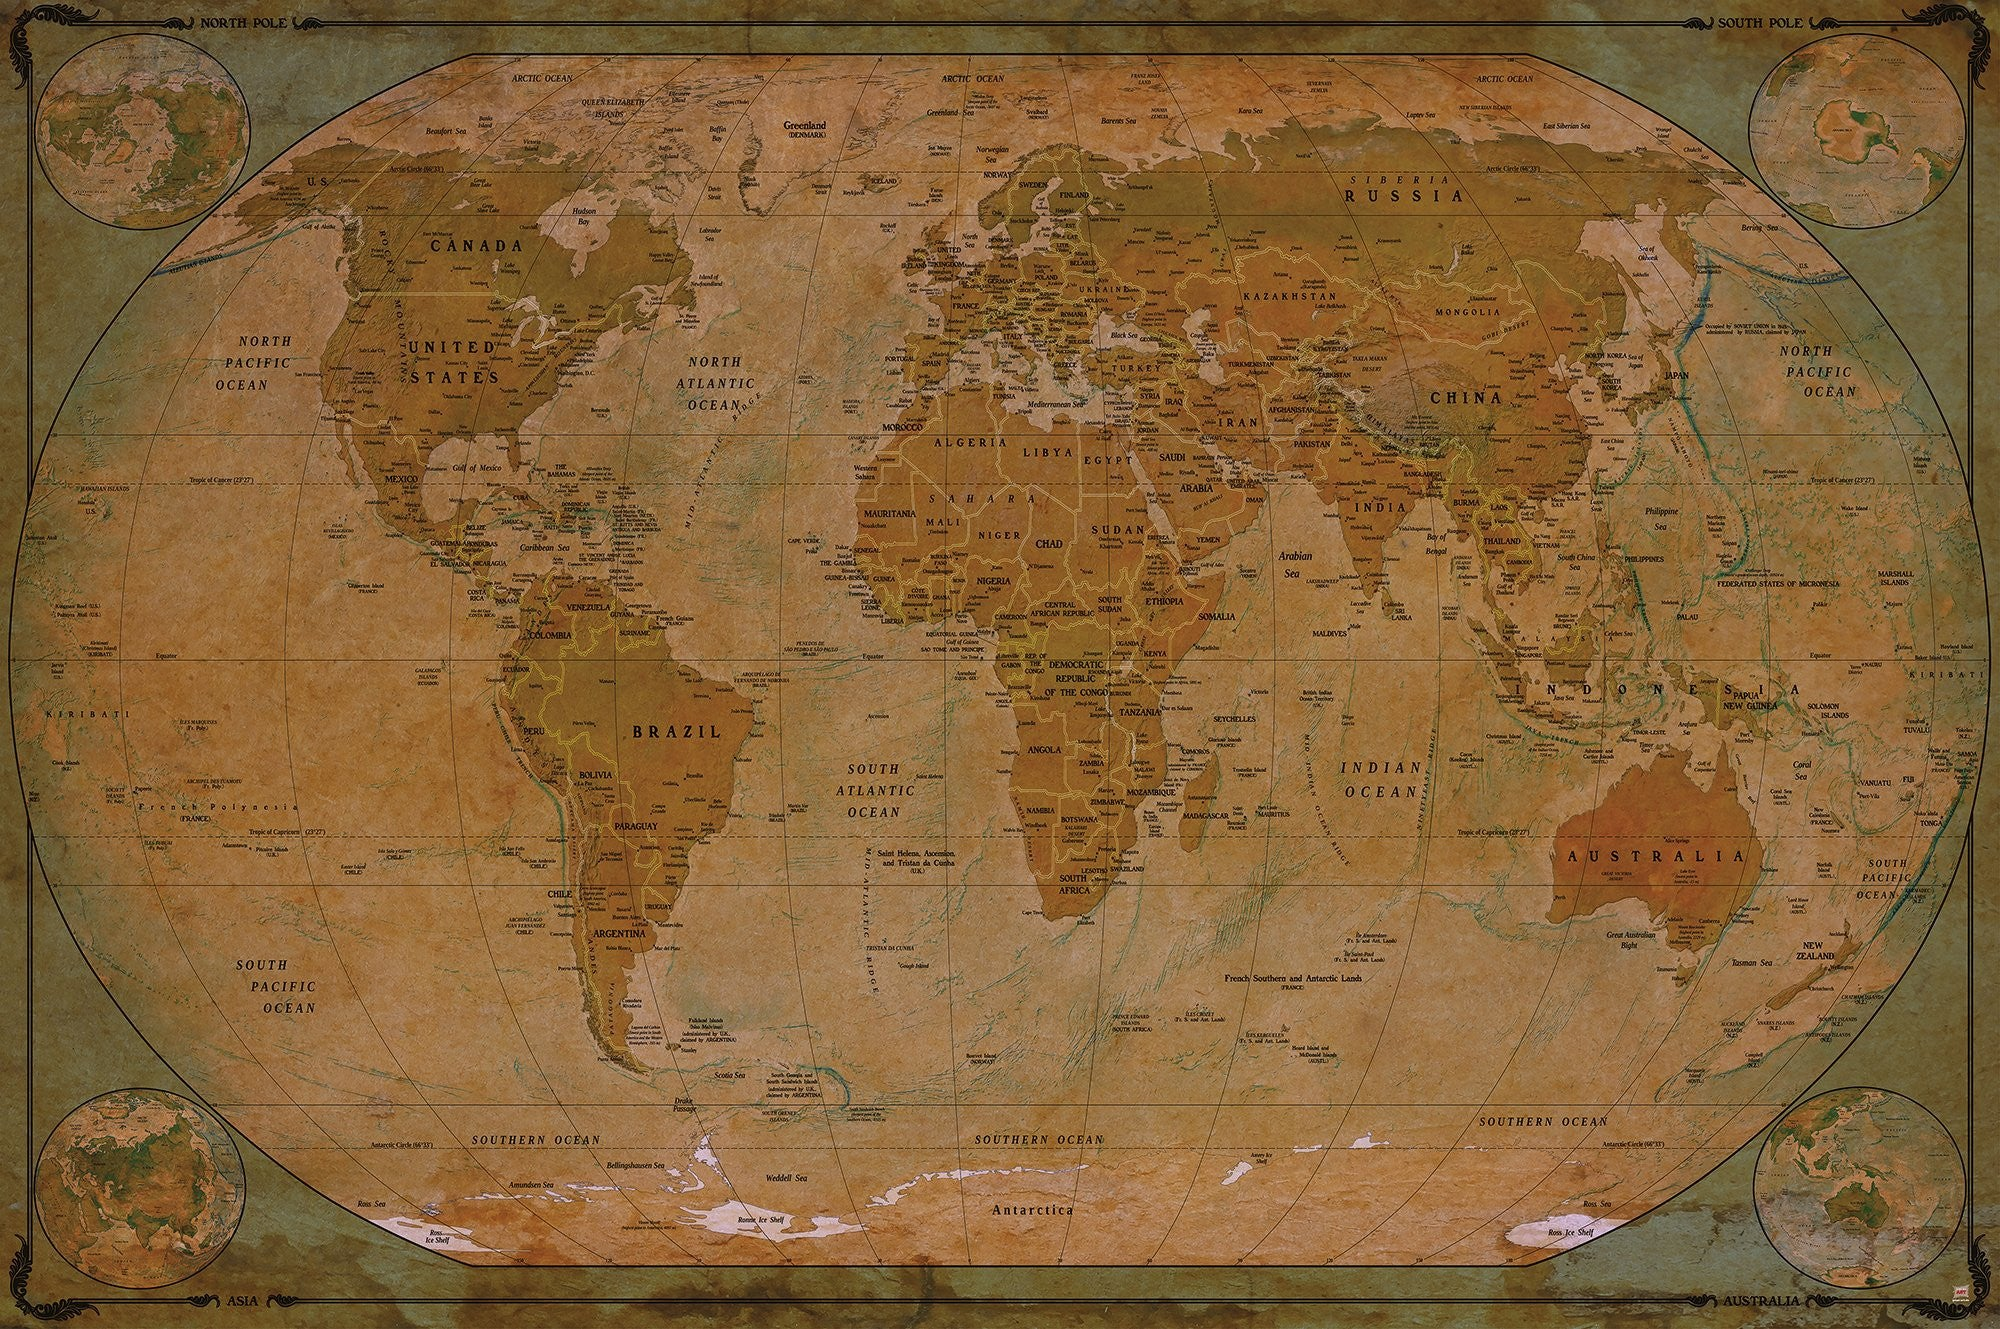 World map atlas globus historic world map photo wallpaper world map atlas globus historic world map photo wallpaper vintage retro motif xxl gumiabroncs Gallery